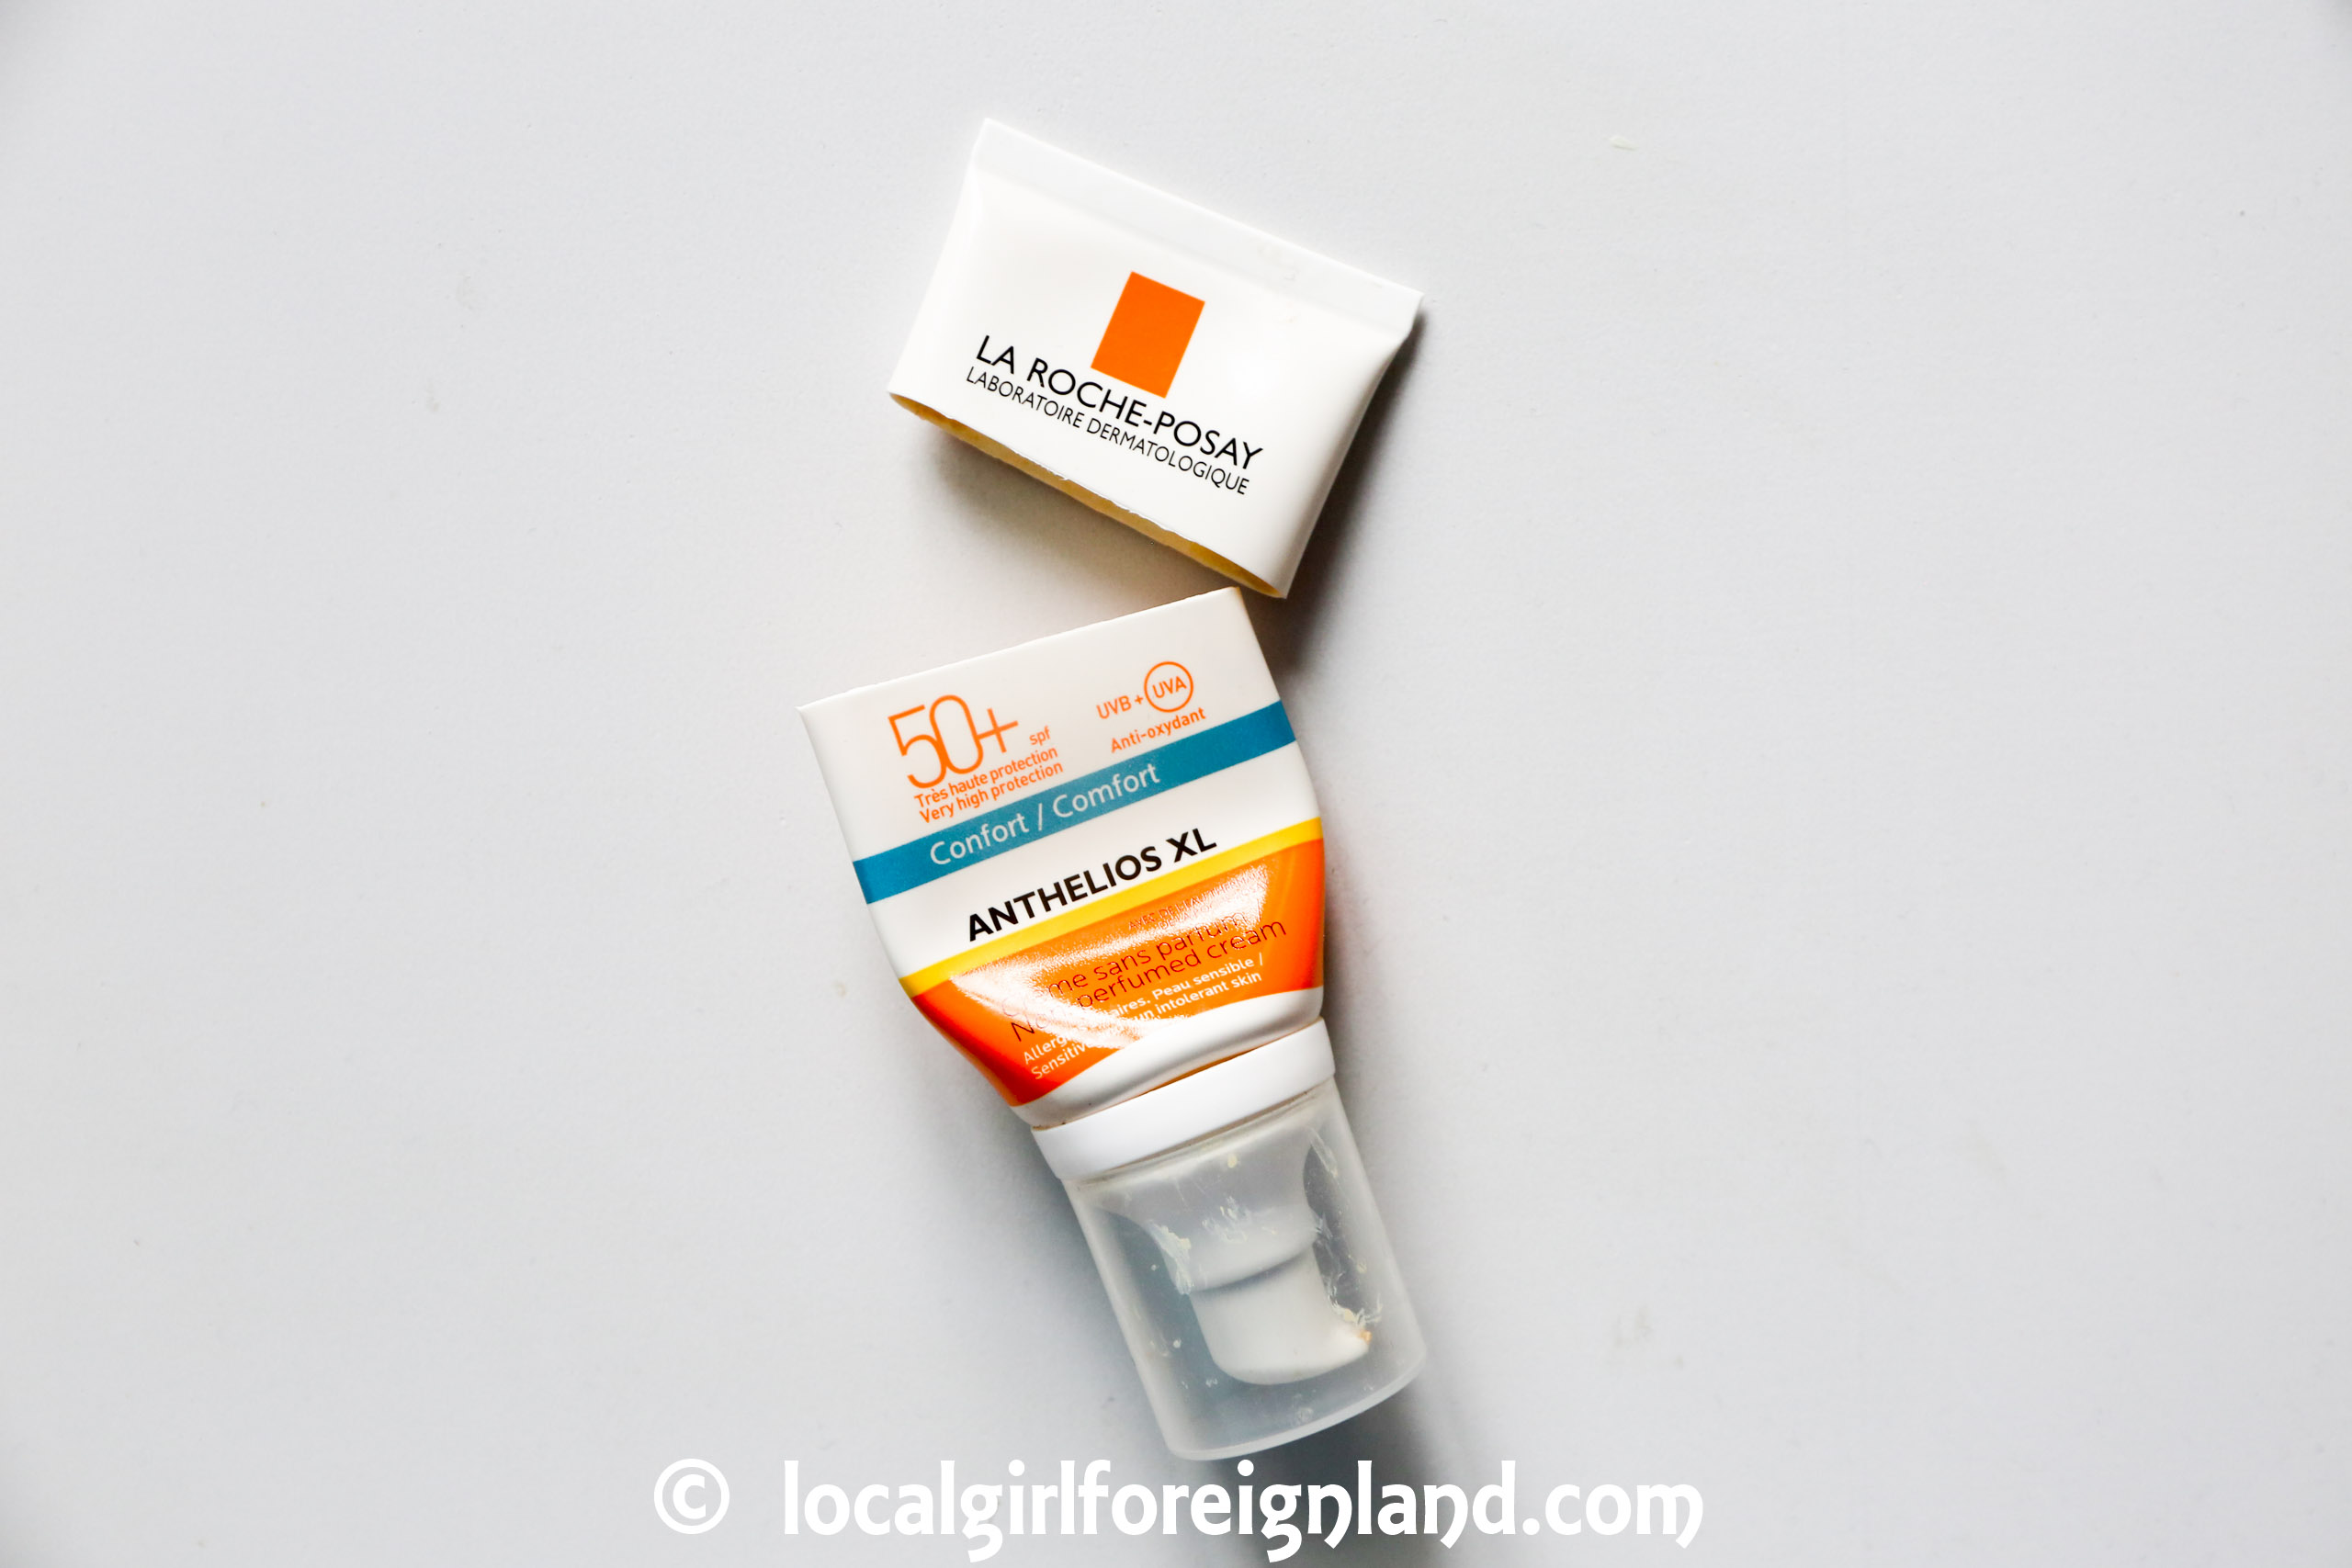 La-Roche-Posay-Anthelios-XL-comfort-product-review-empties